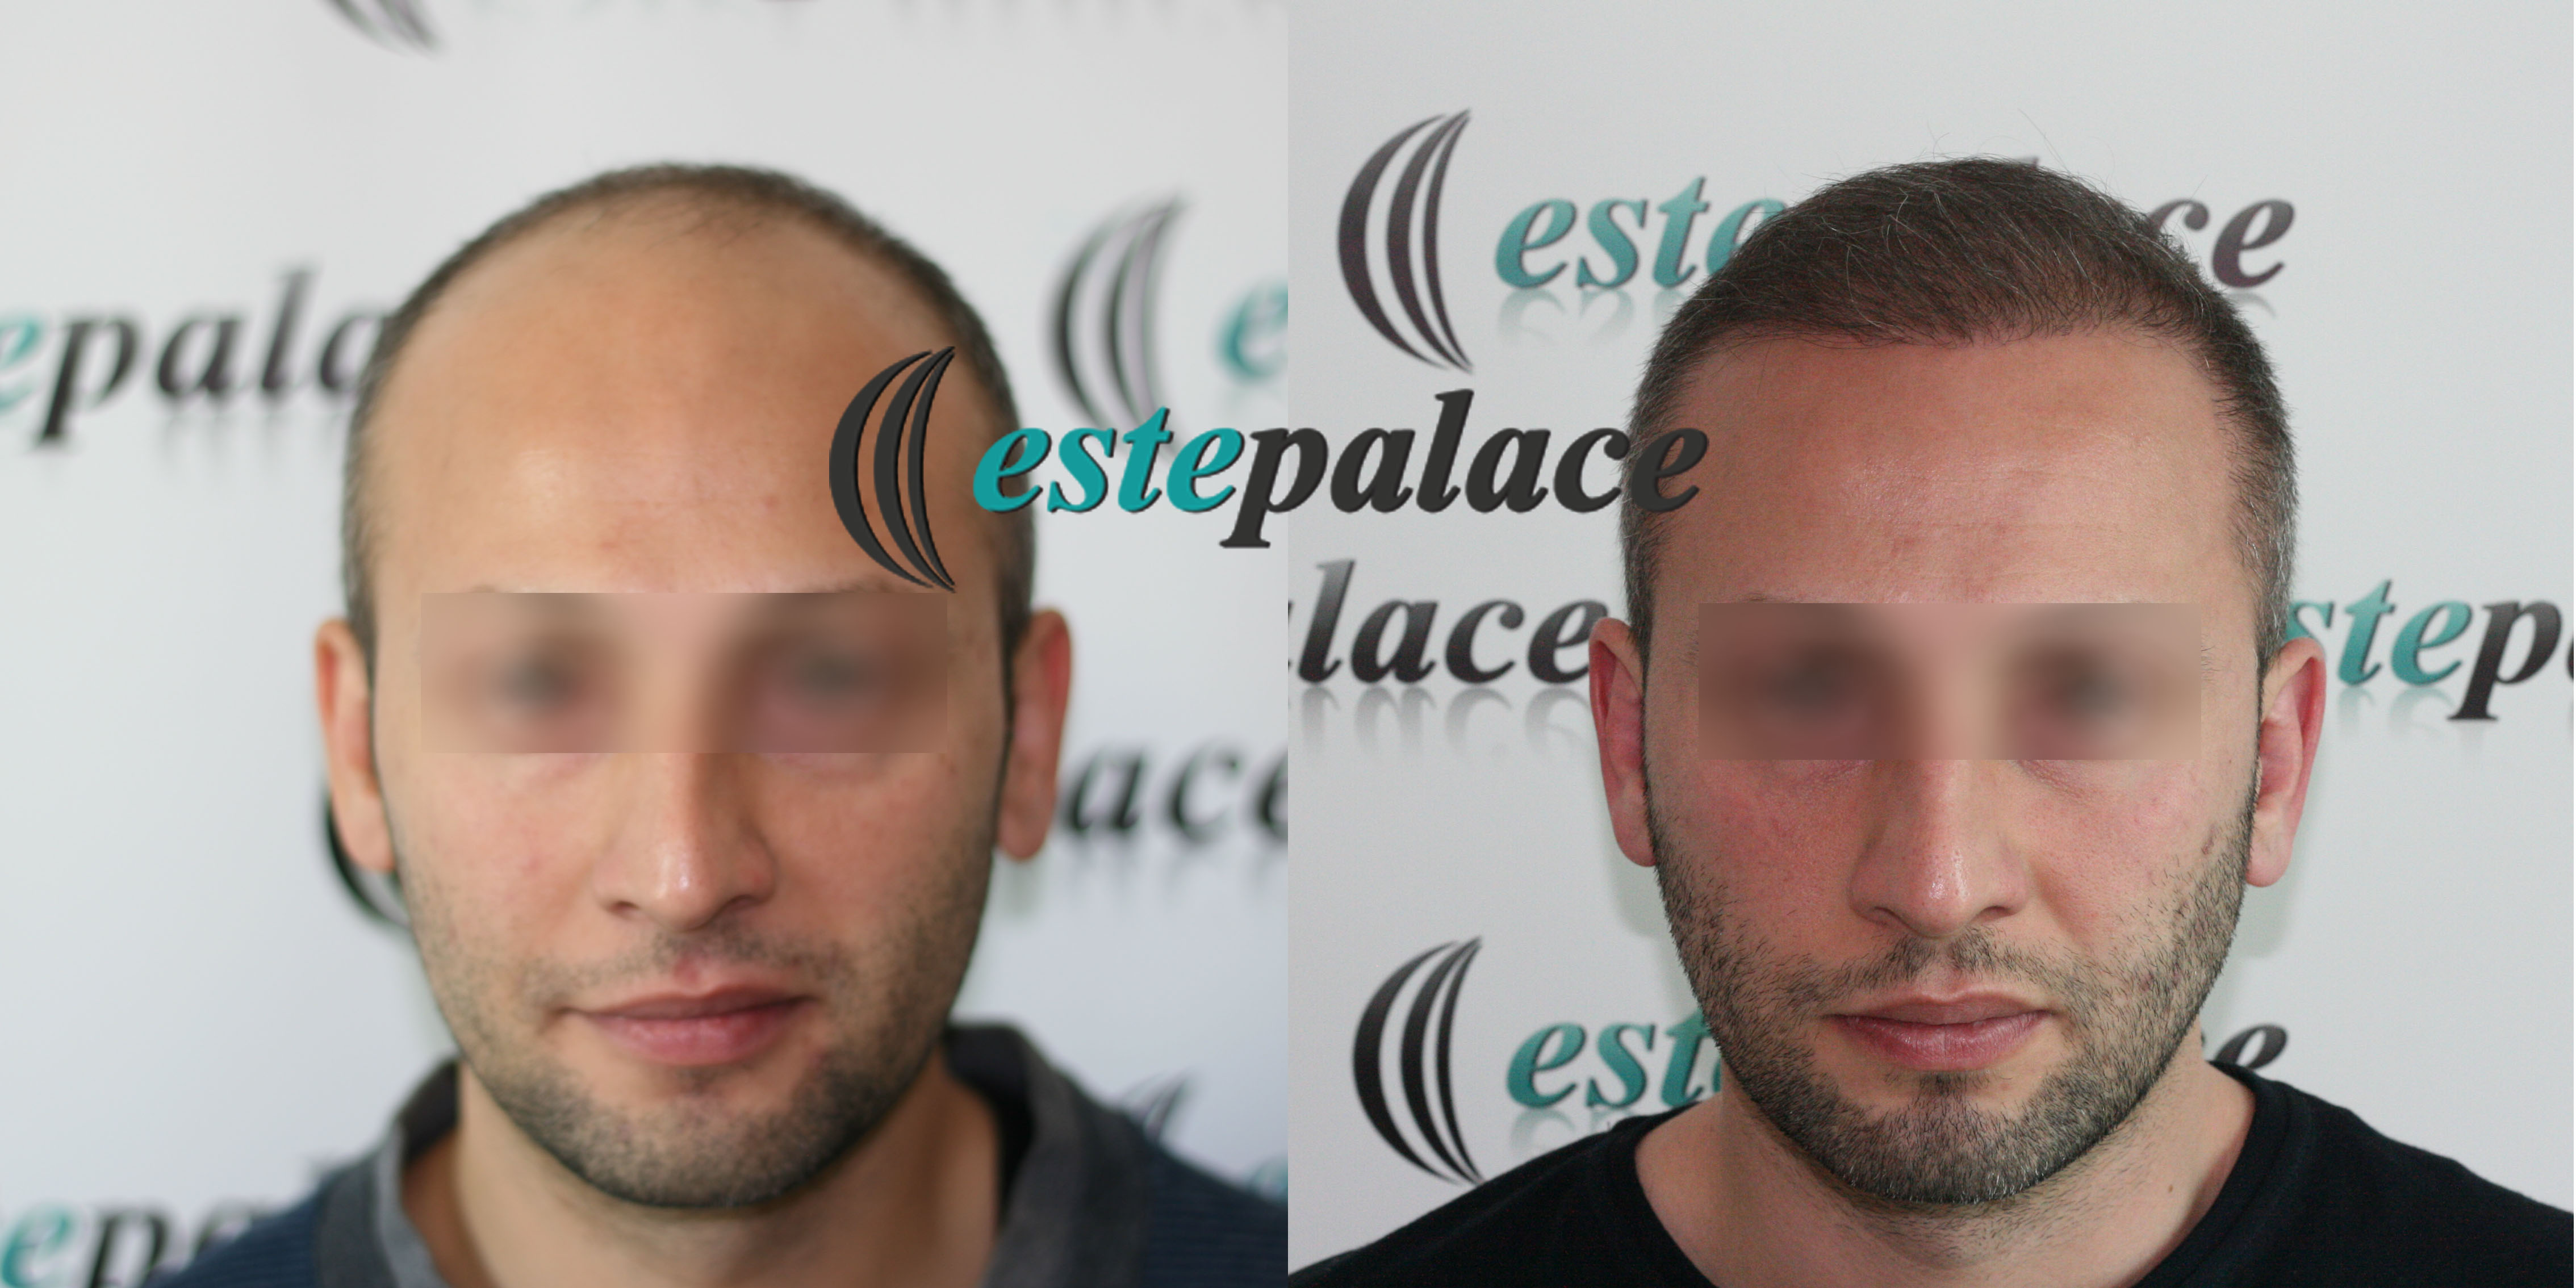 M.Y.Before-After12months